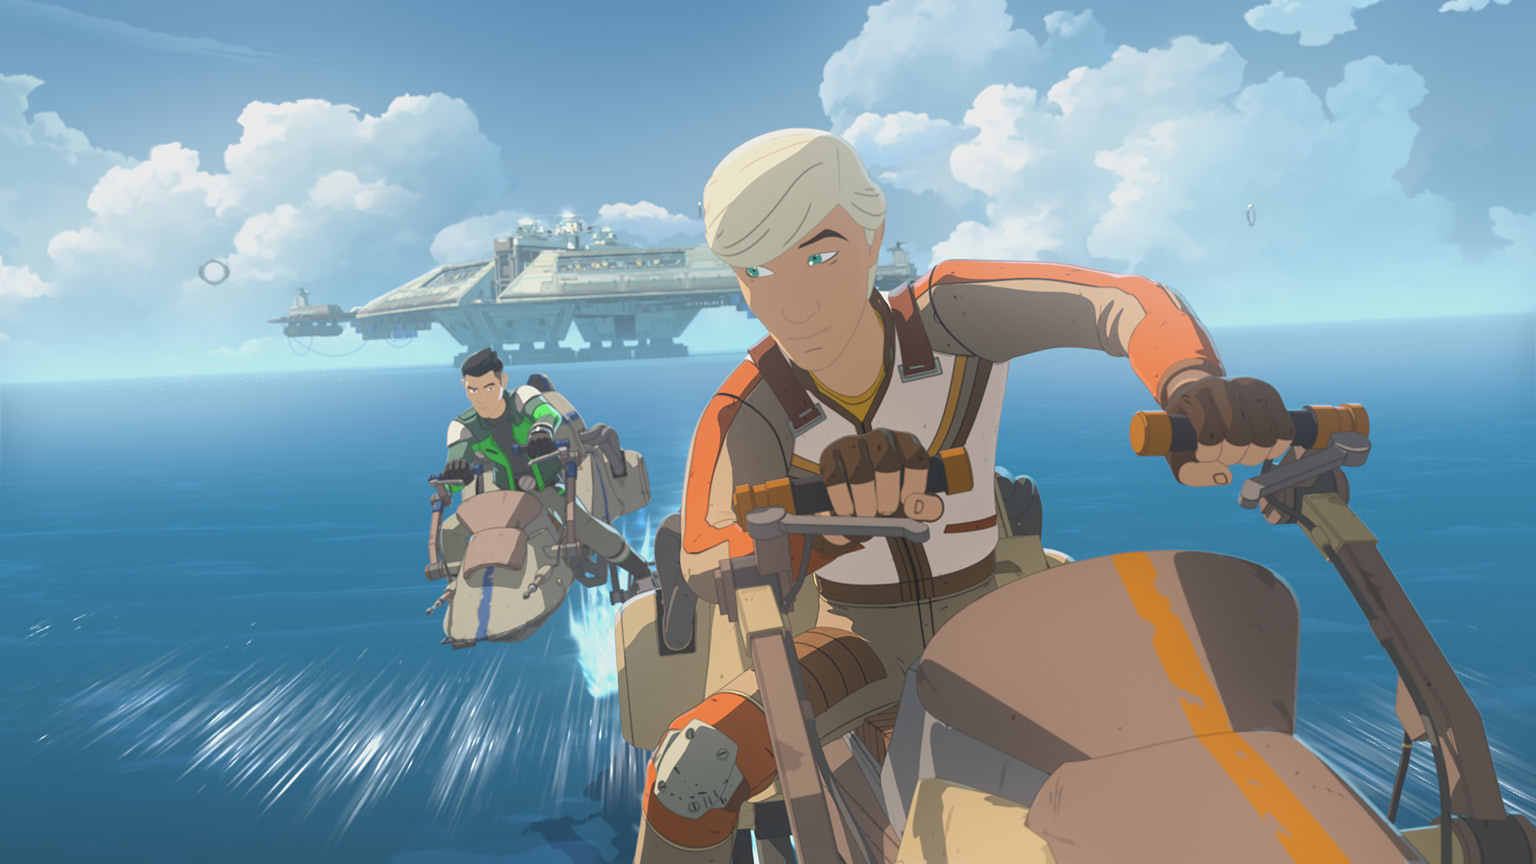 Kaz and Jace race in Star Wars Resistance.